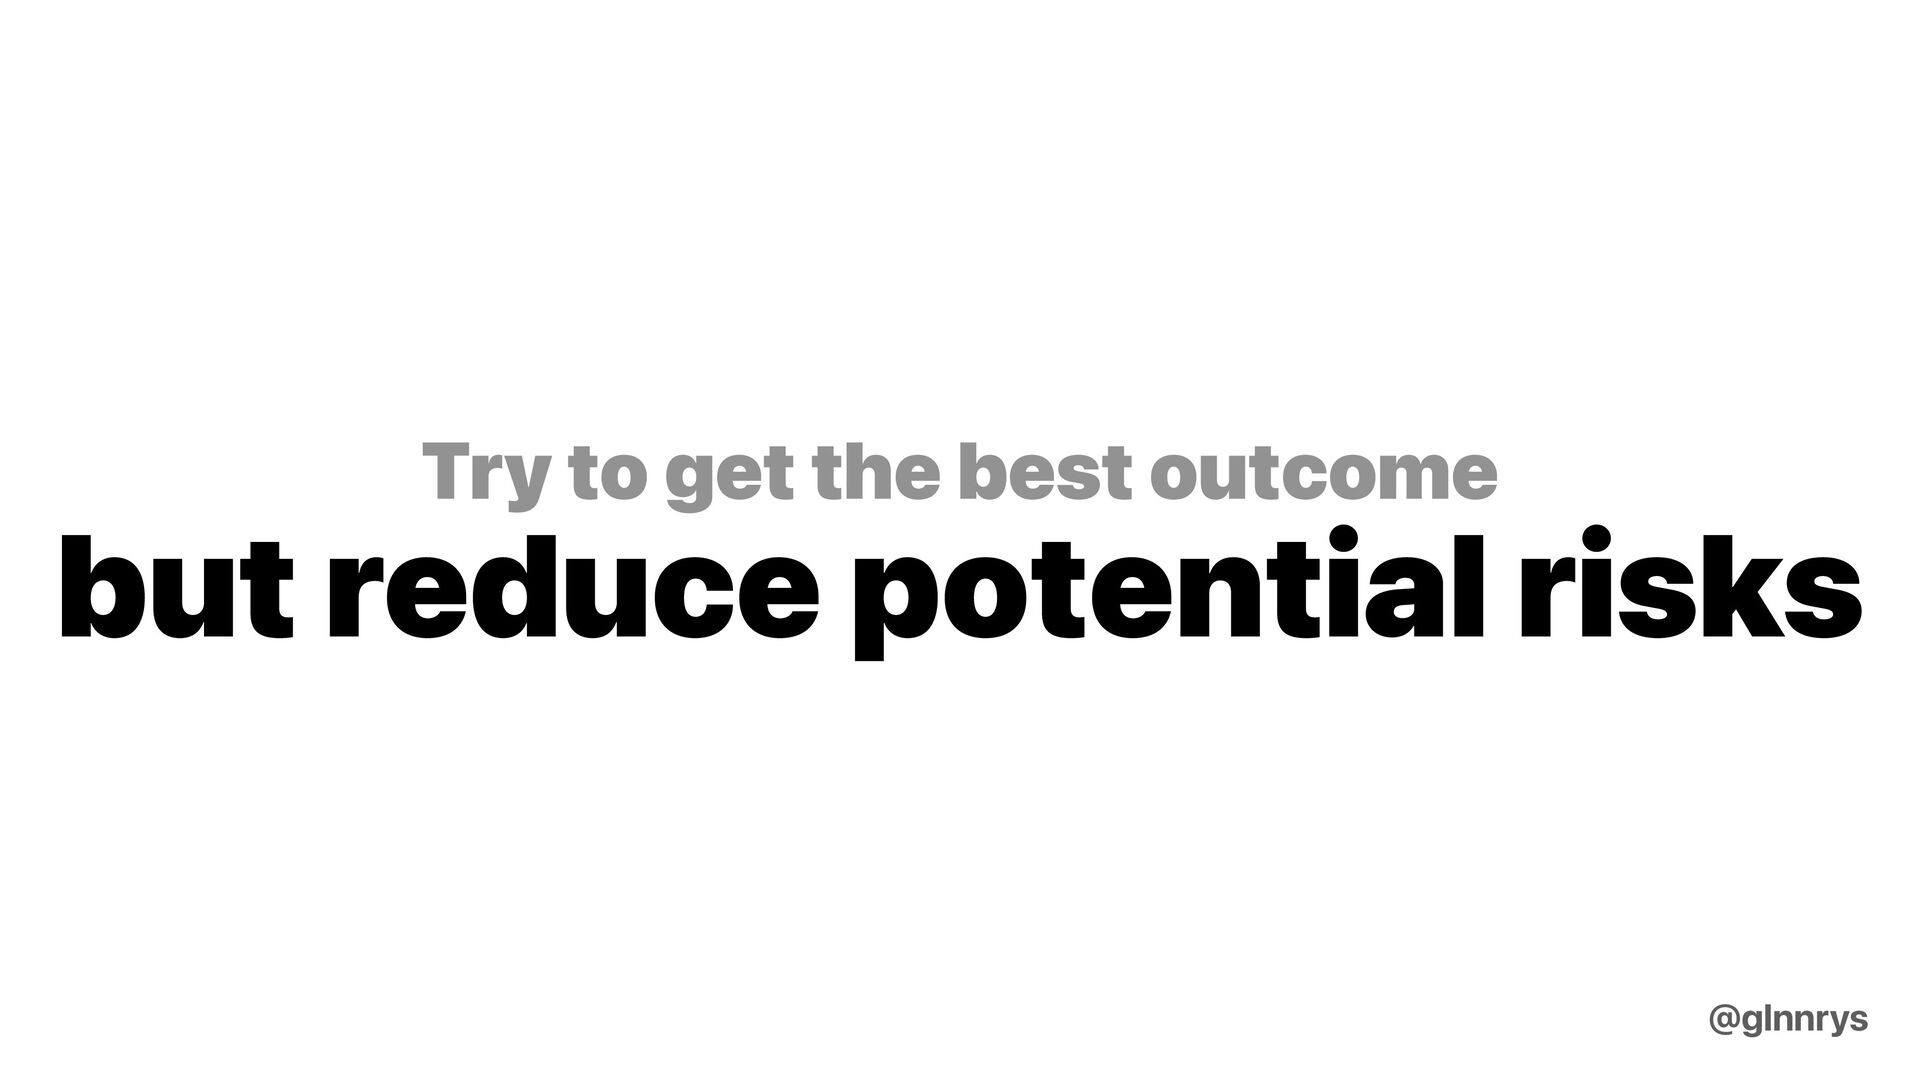 With full control it's your respobility to main...